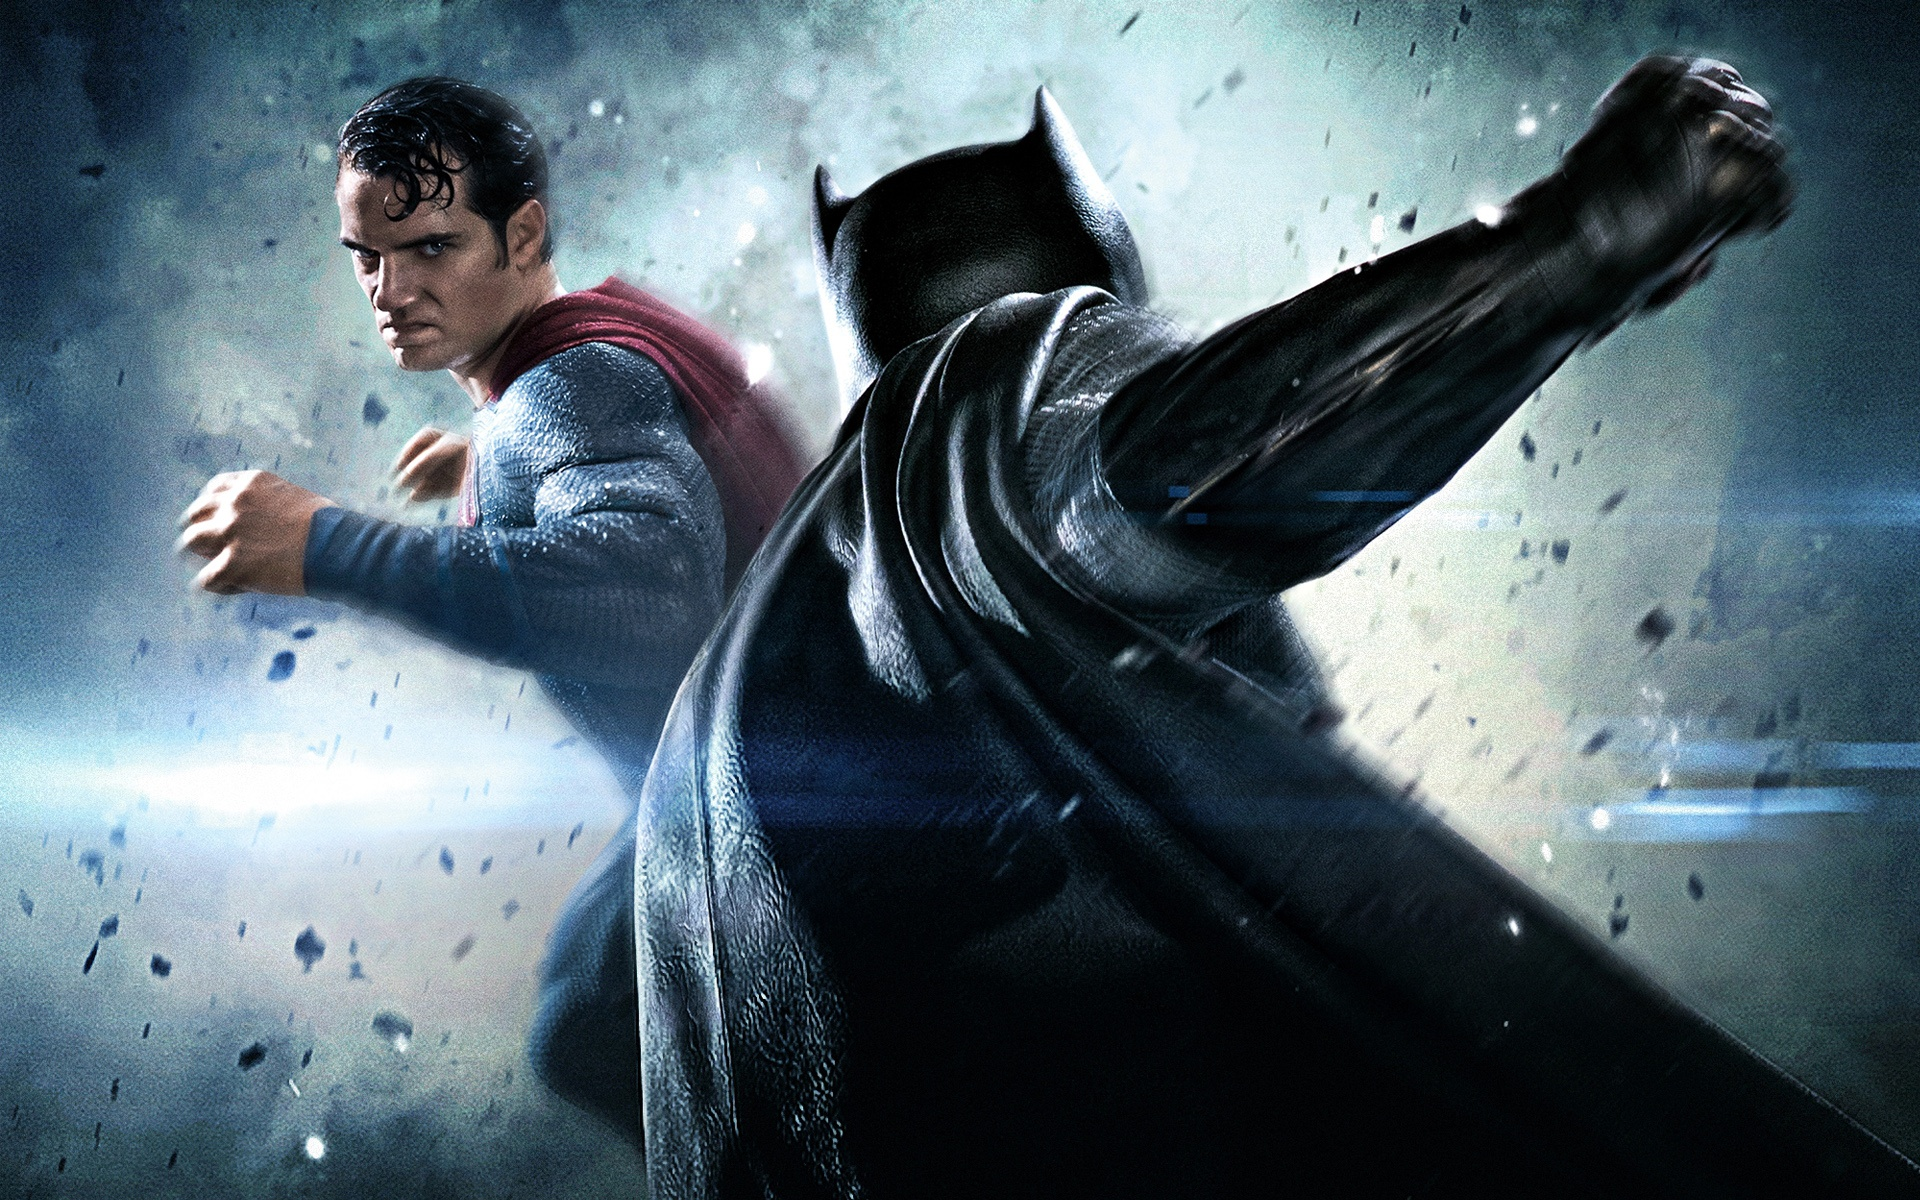 Batman And Superman Wallpaper Background HD Download 1920x1200